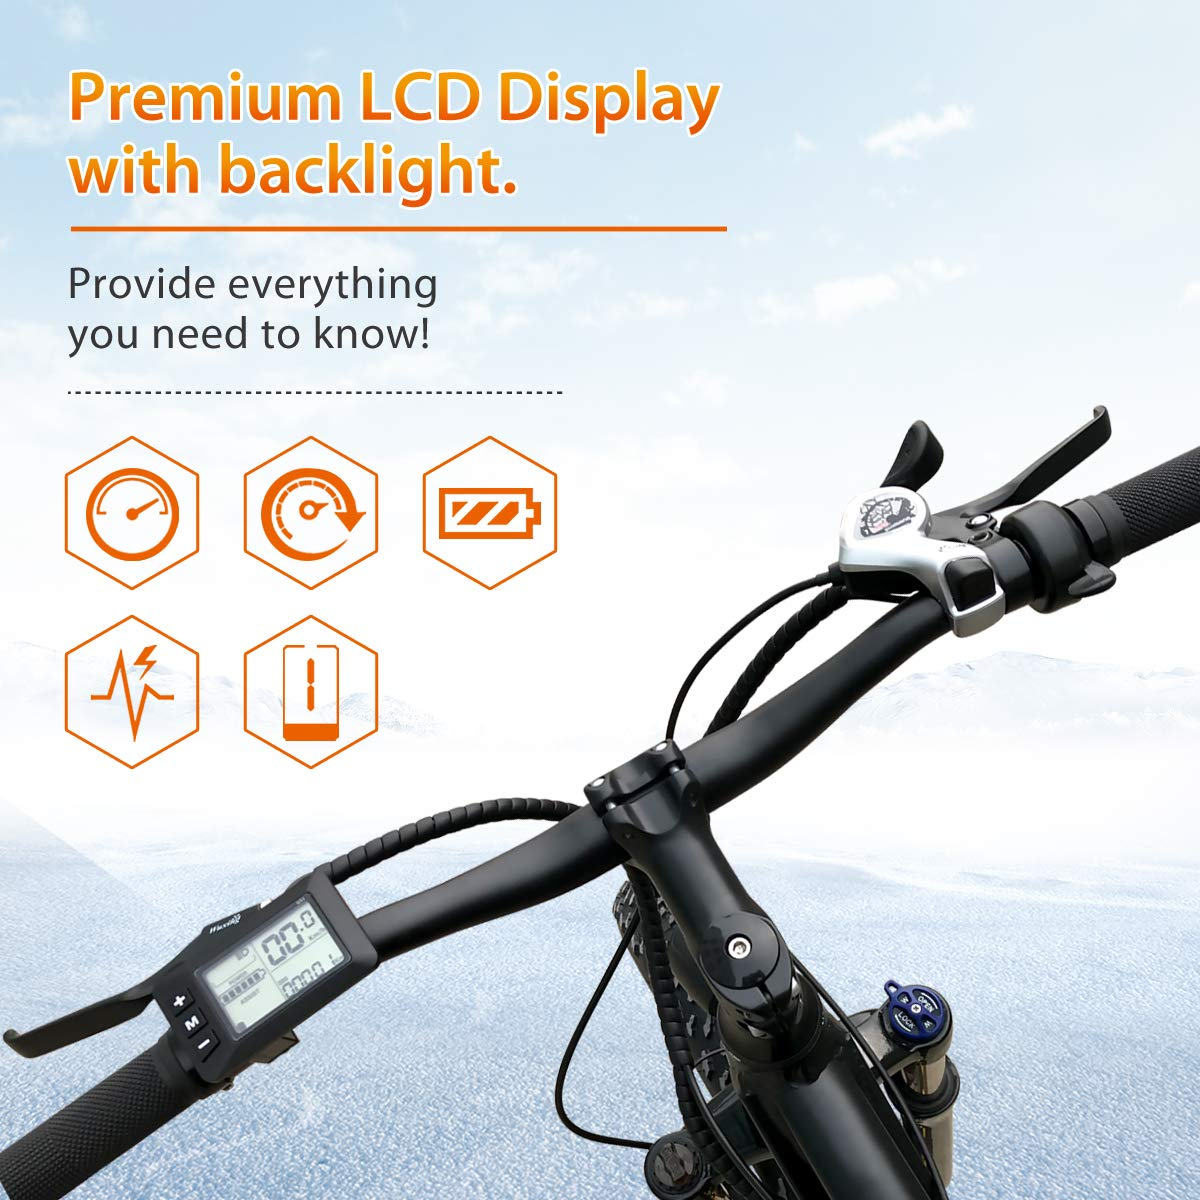 VTUVIA 26 Fat Tire 500W Electric Bike with 48V 12Ah Removable Lithium-Ion Battery Waterproof City Bicycle Mountain E-Bike for Sport Riding